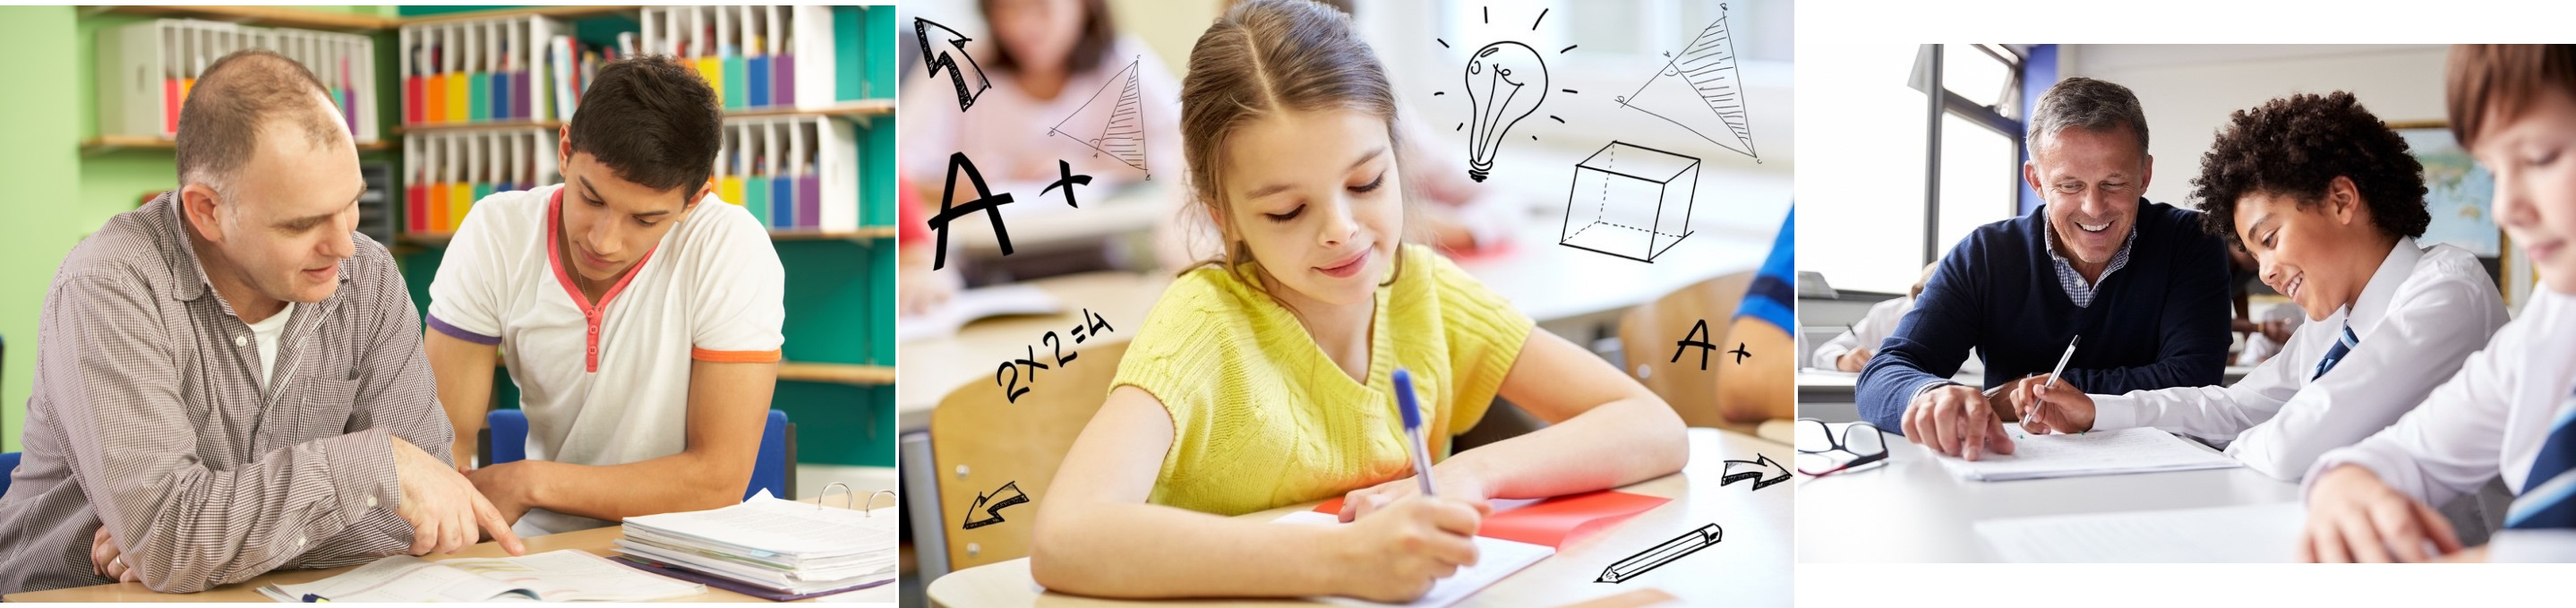 Tutortoo Franchise | Children's Tuition Business